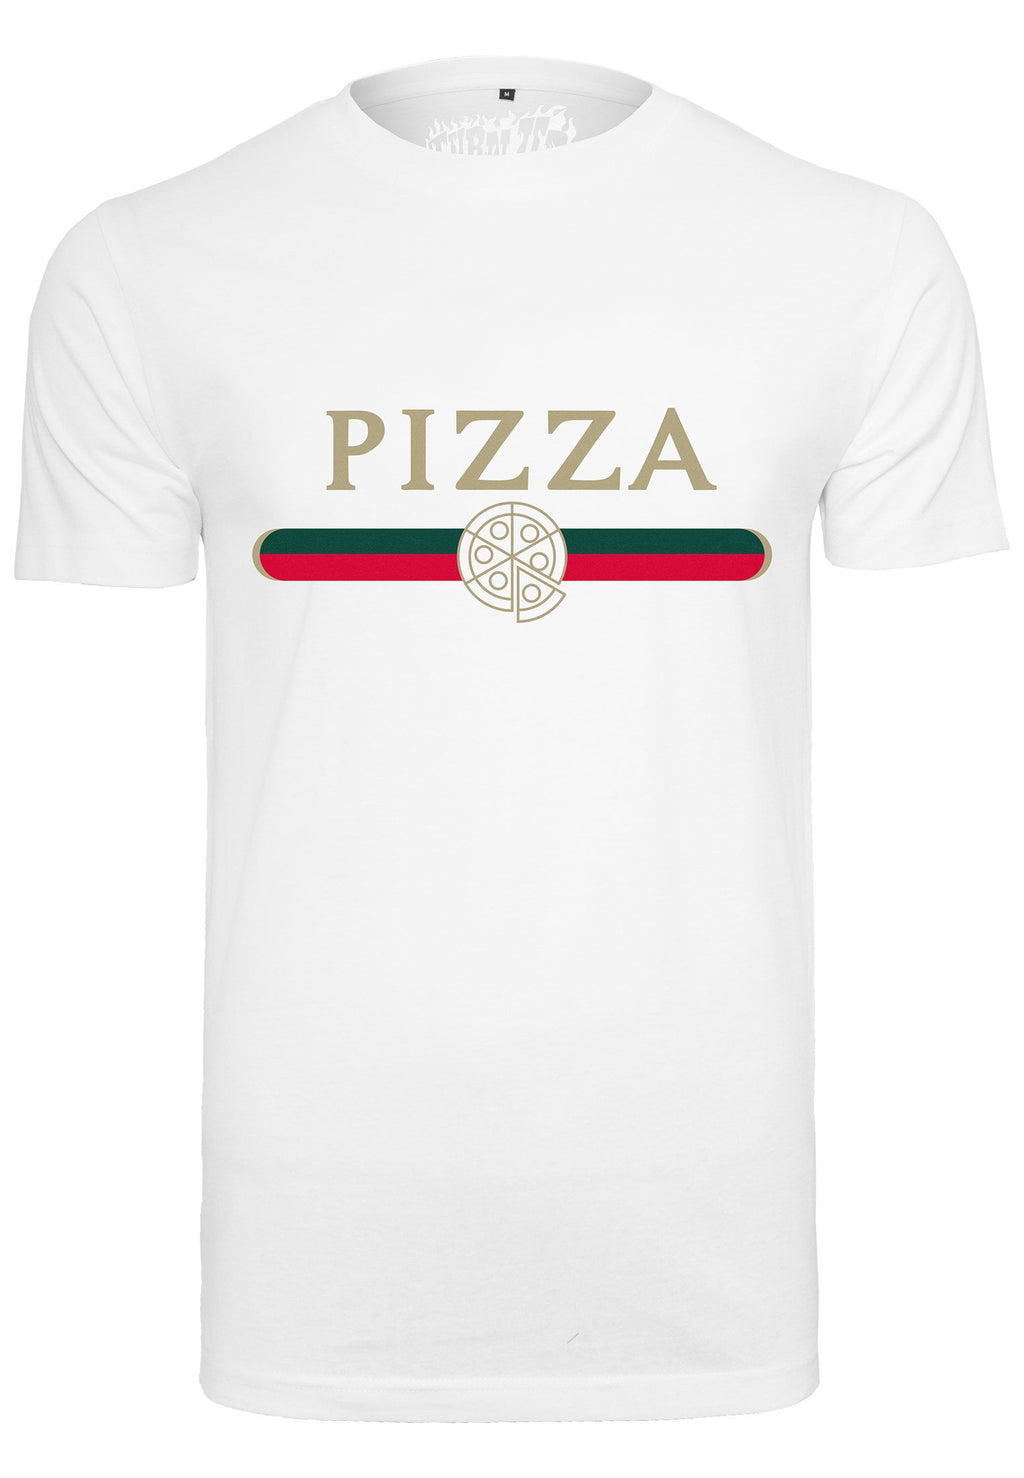 Pizza Slice Tee - White